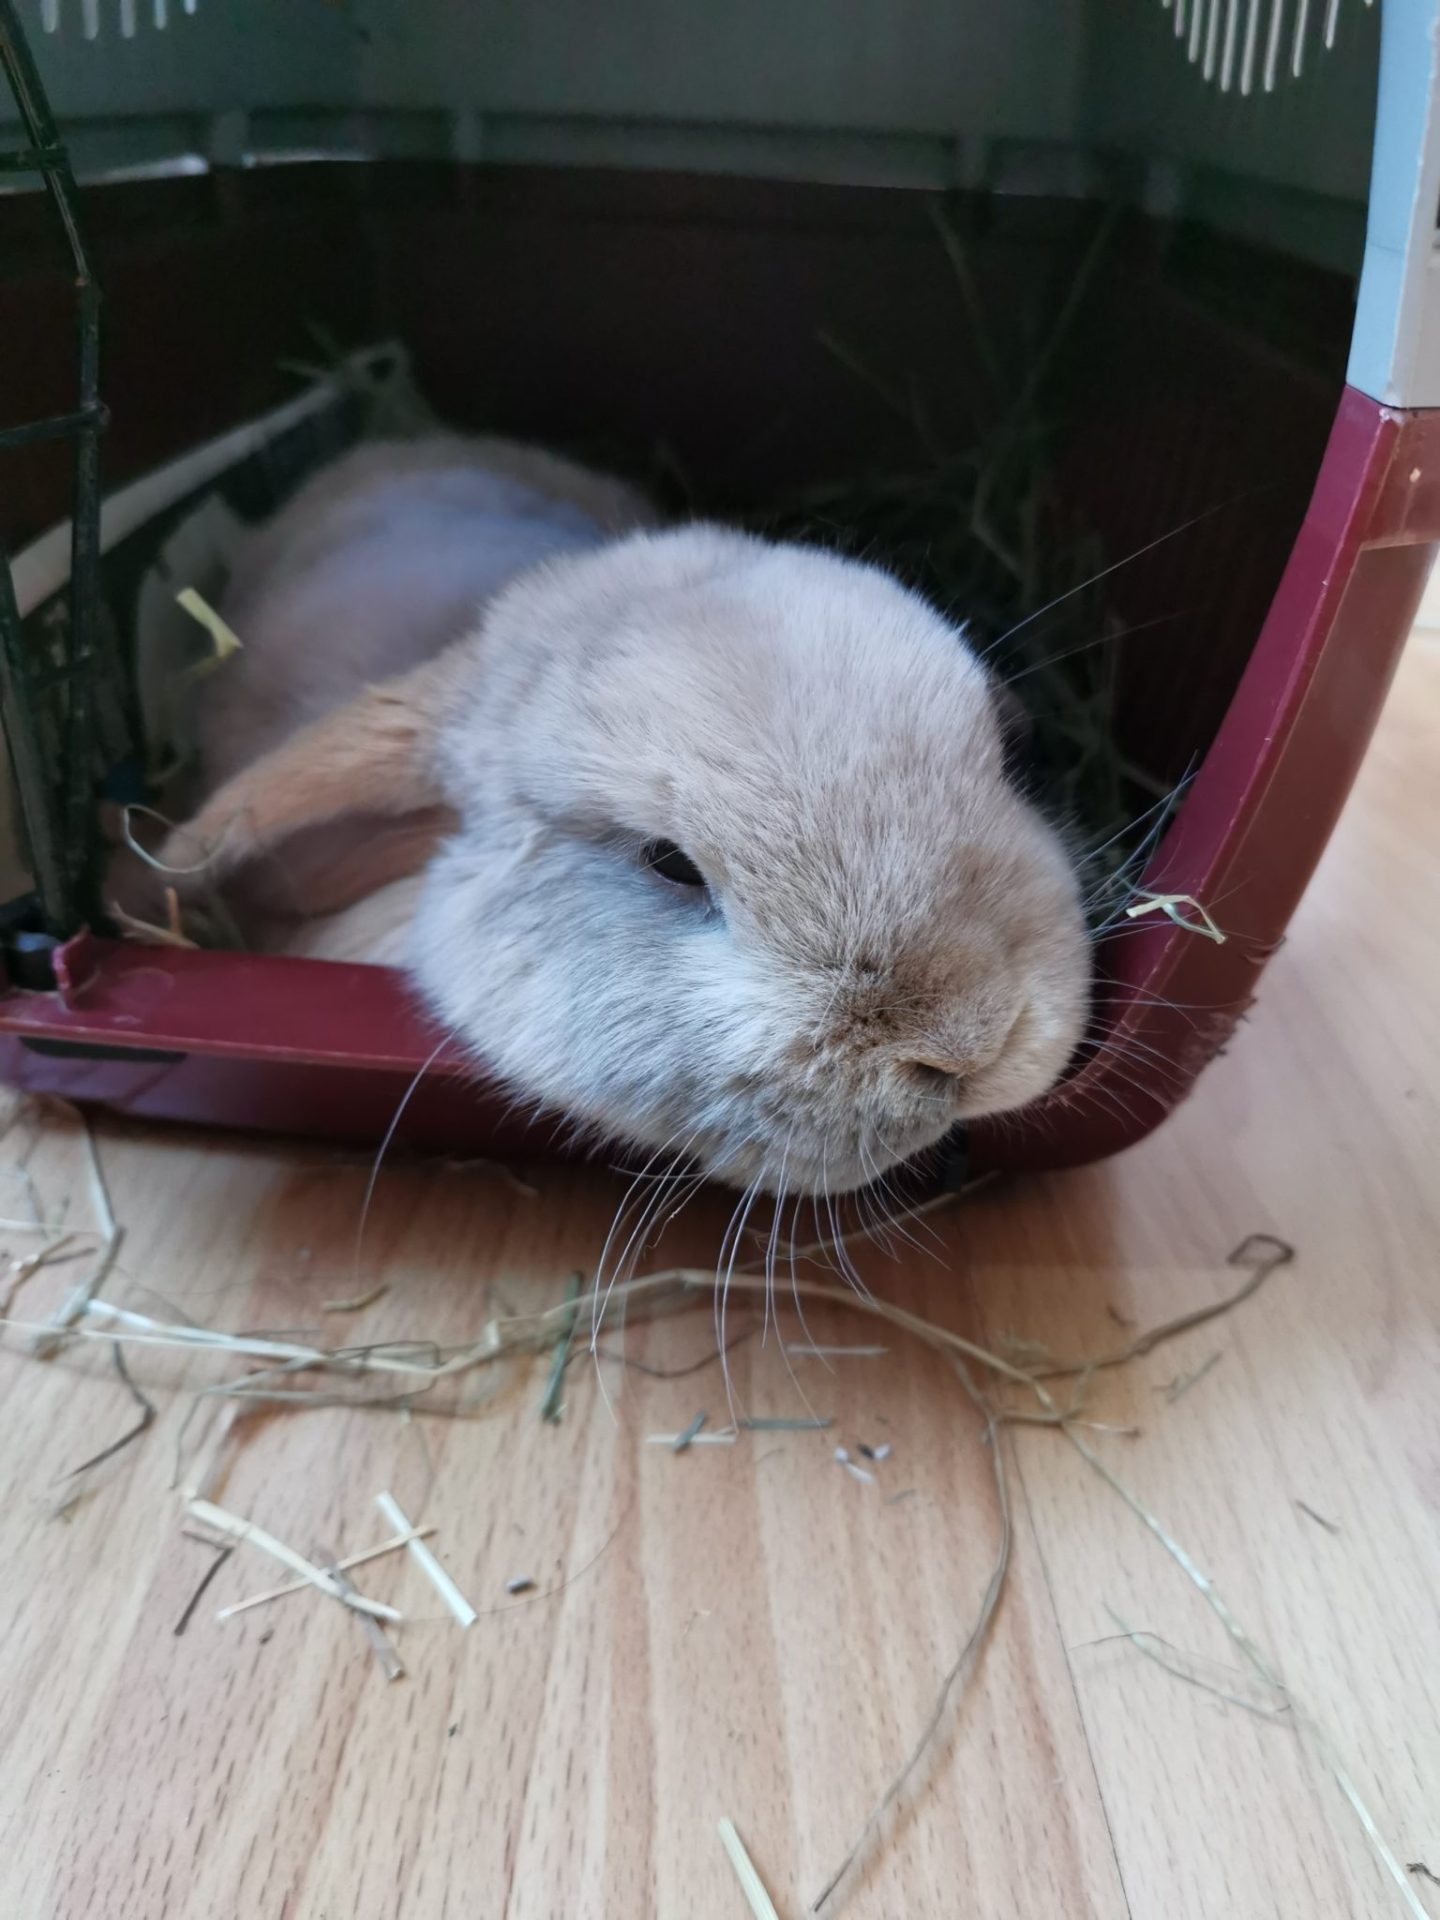 dwarf lop house bunny https://lukeosaurusandme.co.uk